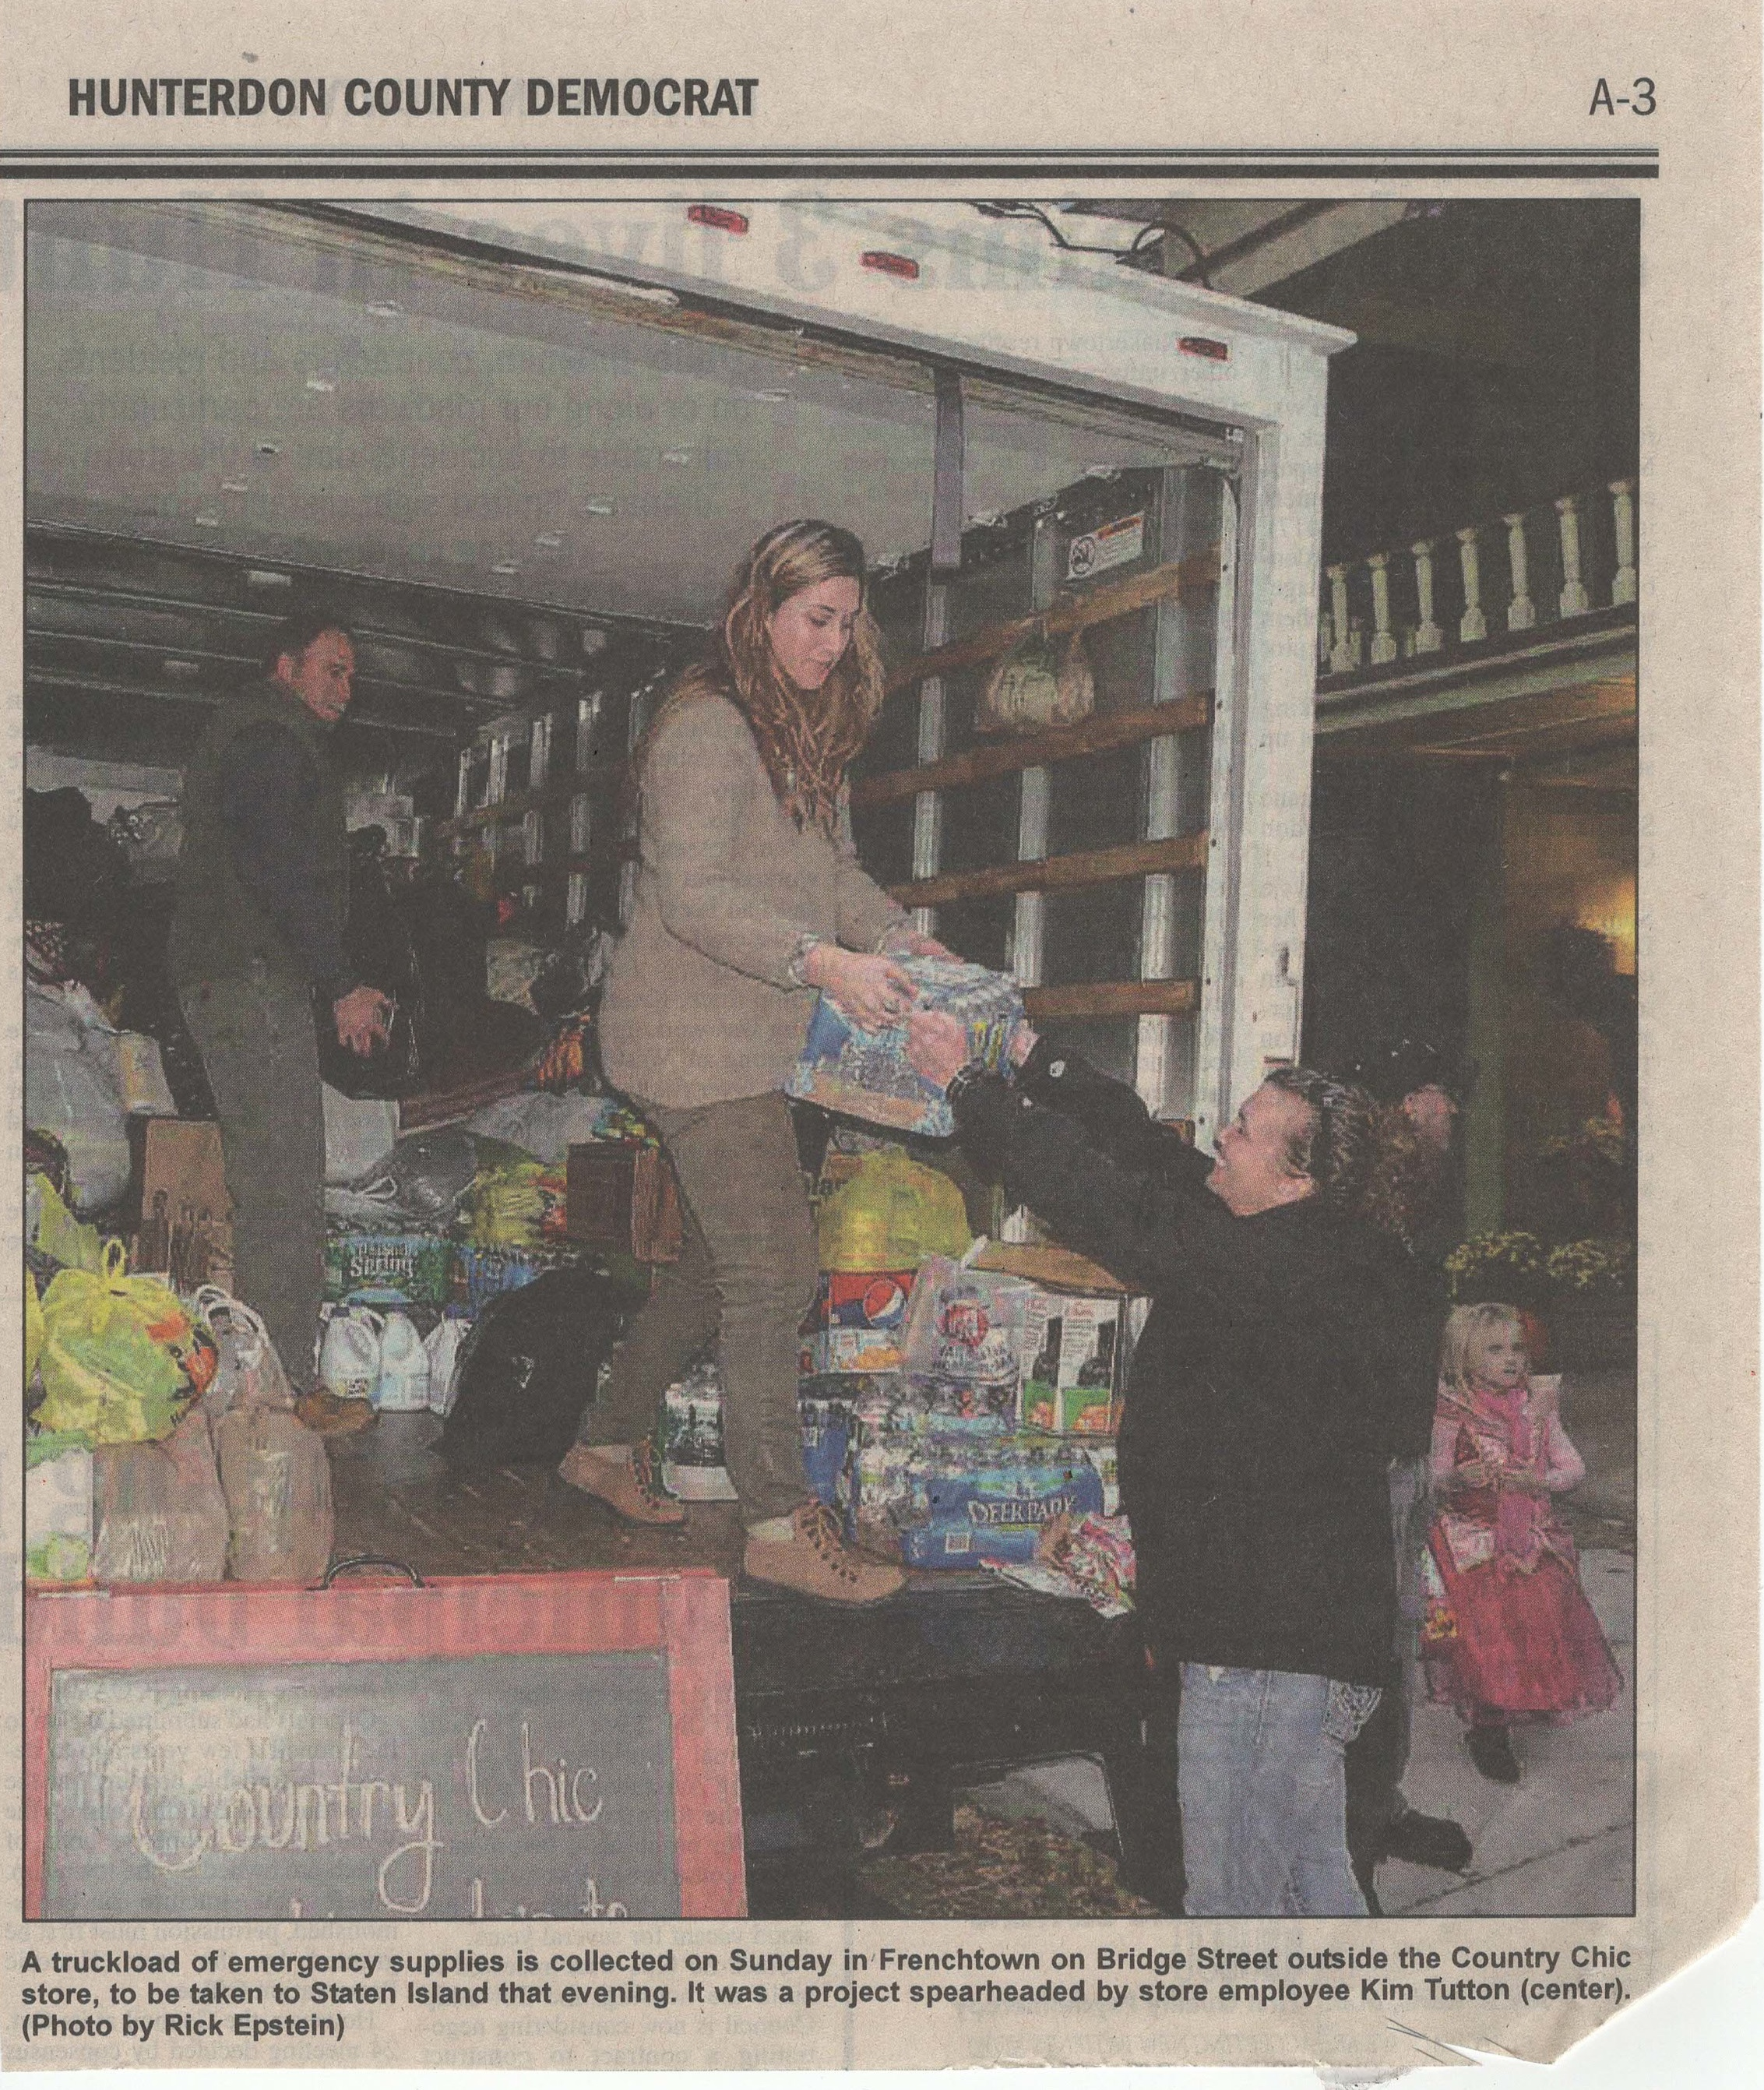 2012- Hunterdon County Democrat - Hurricane Sandy Relief Donation Drive at Country Chic